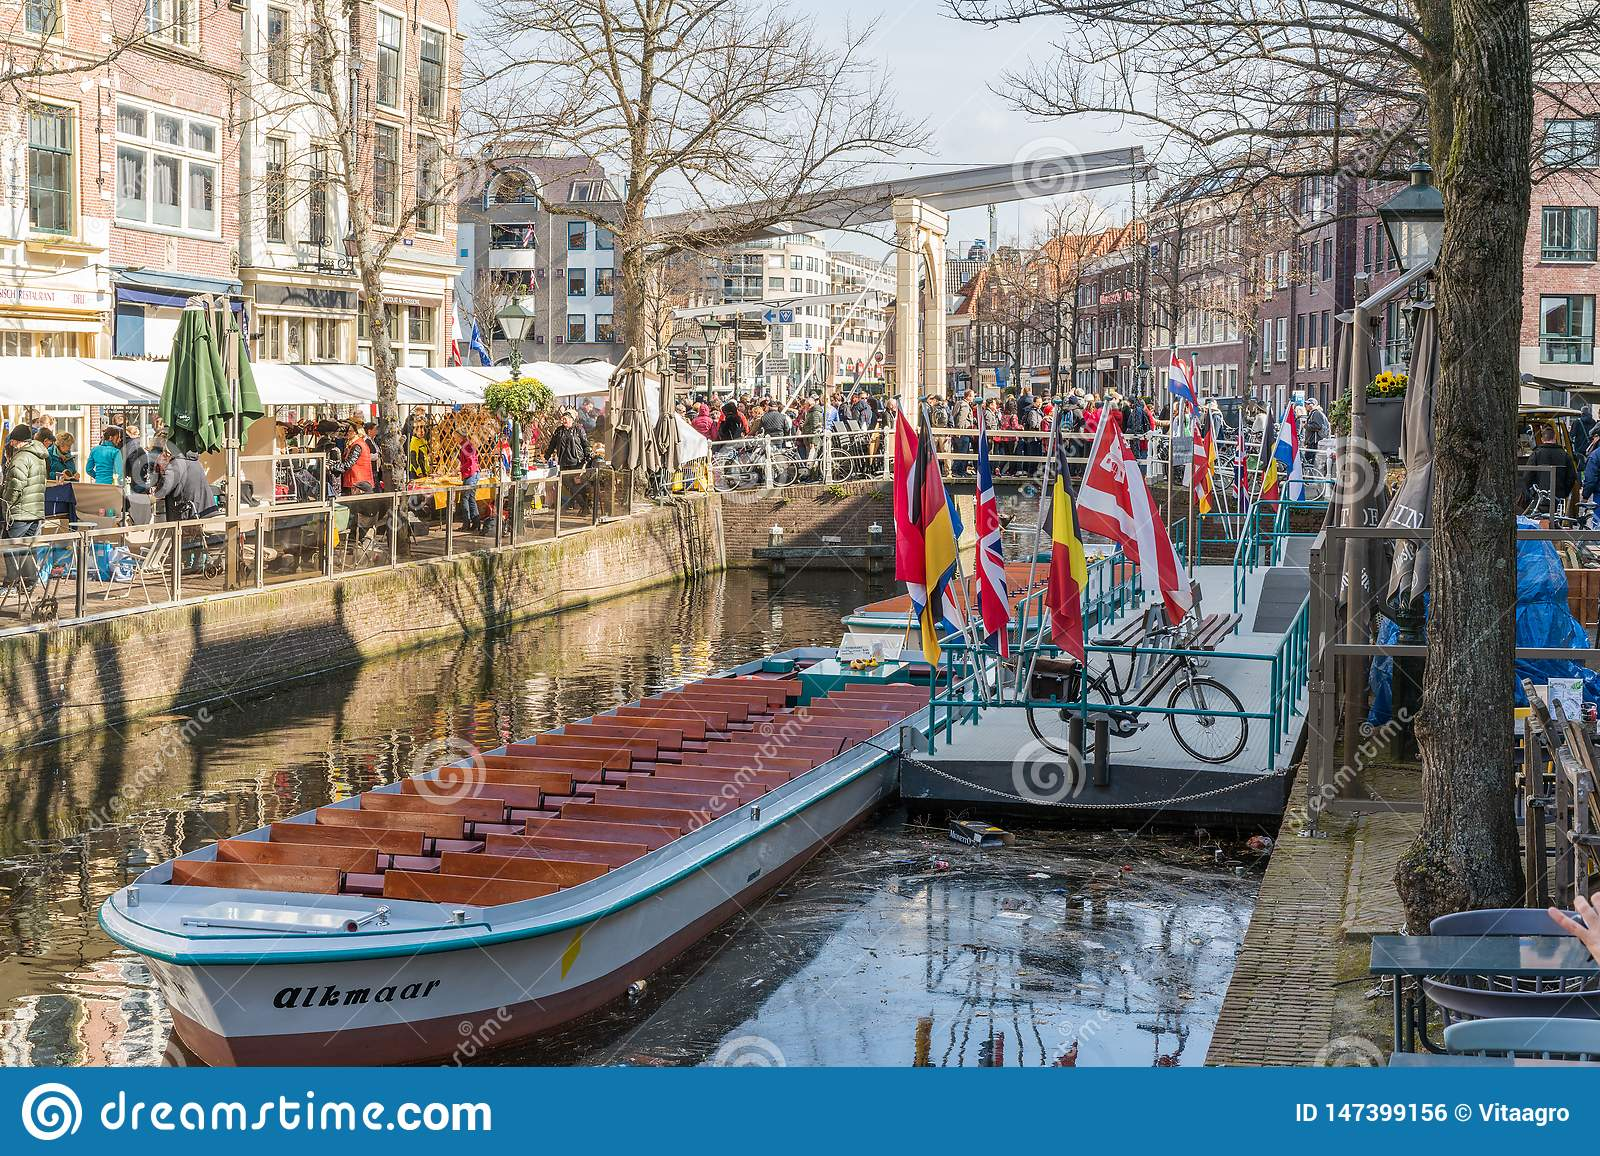 Alkmaar, the Netherlands - April 12, 2019: Kaasmarkt and canals in the Dutch town of Alkmaar, the city with its famous cheese